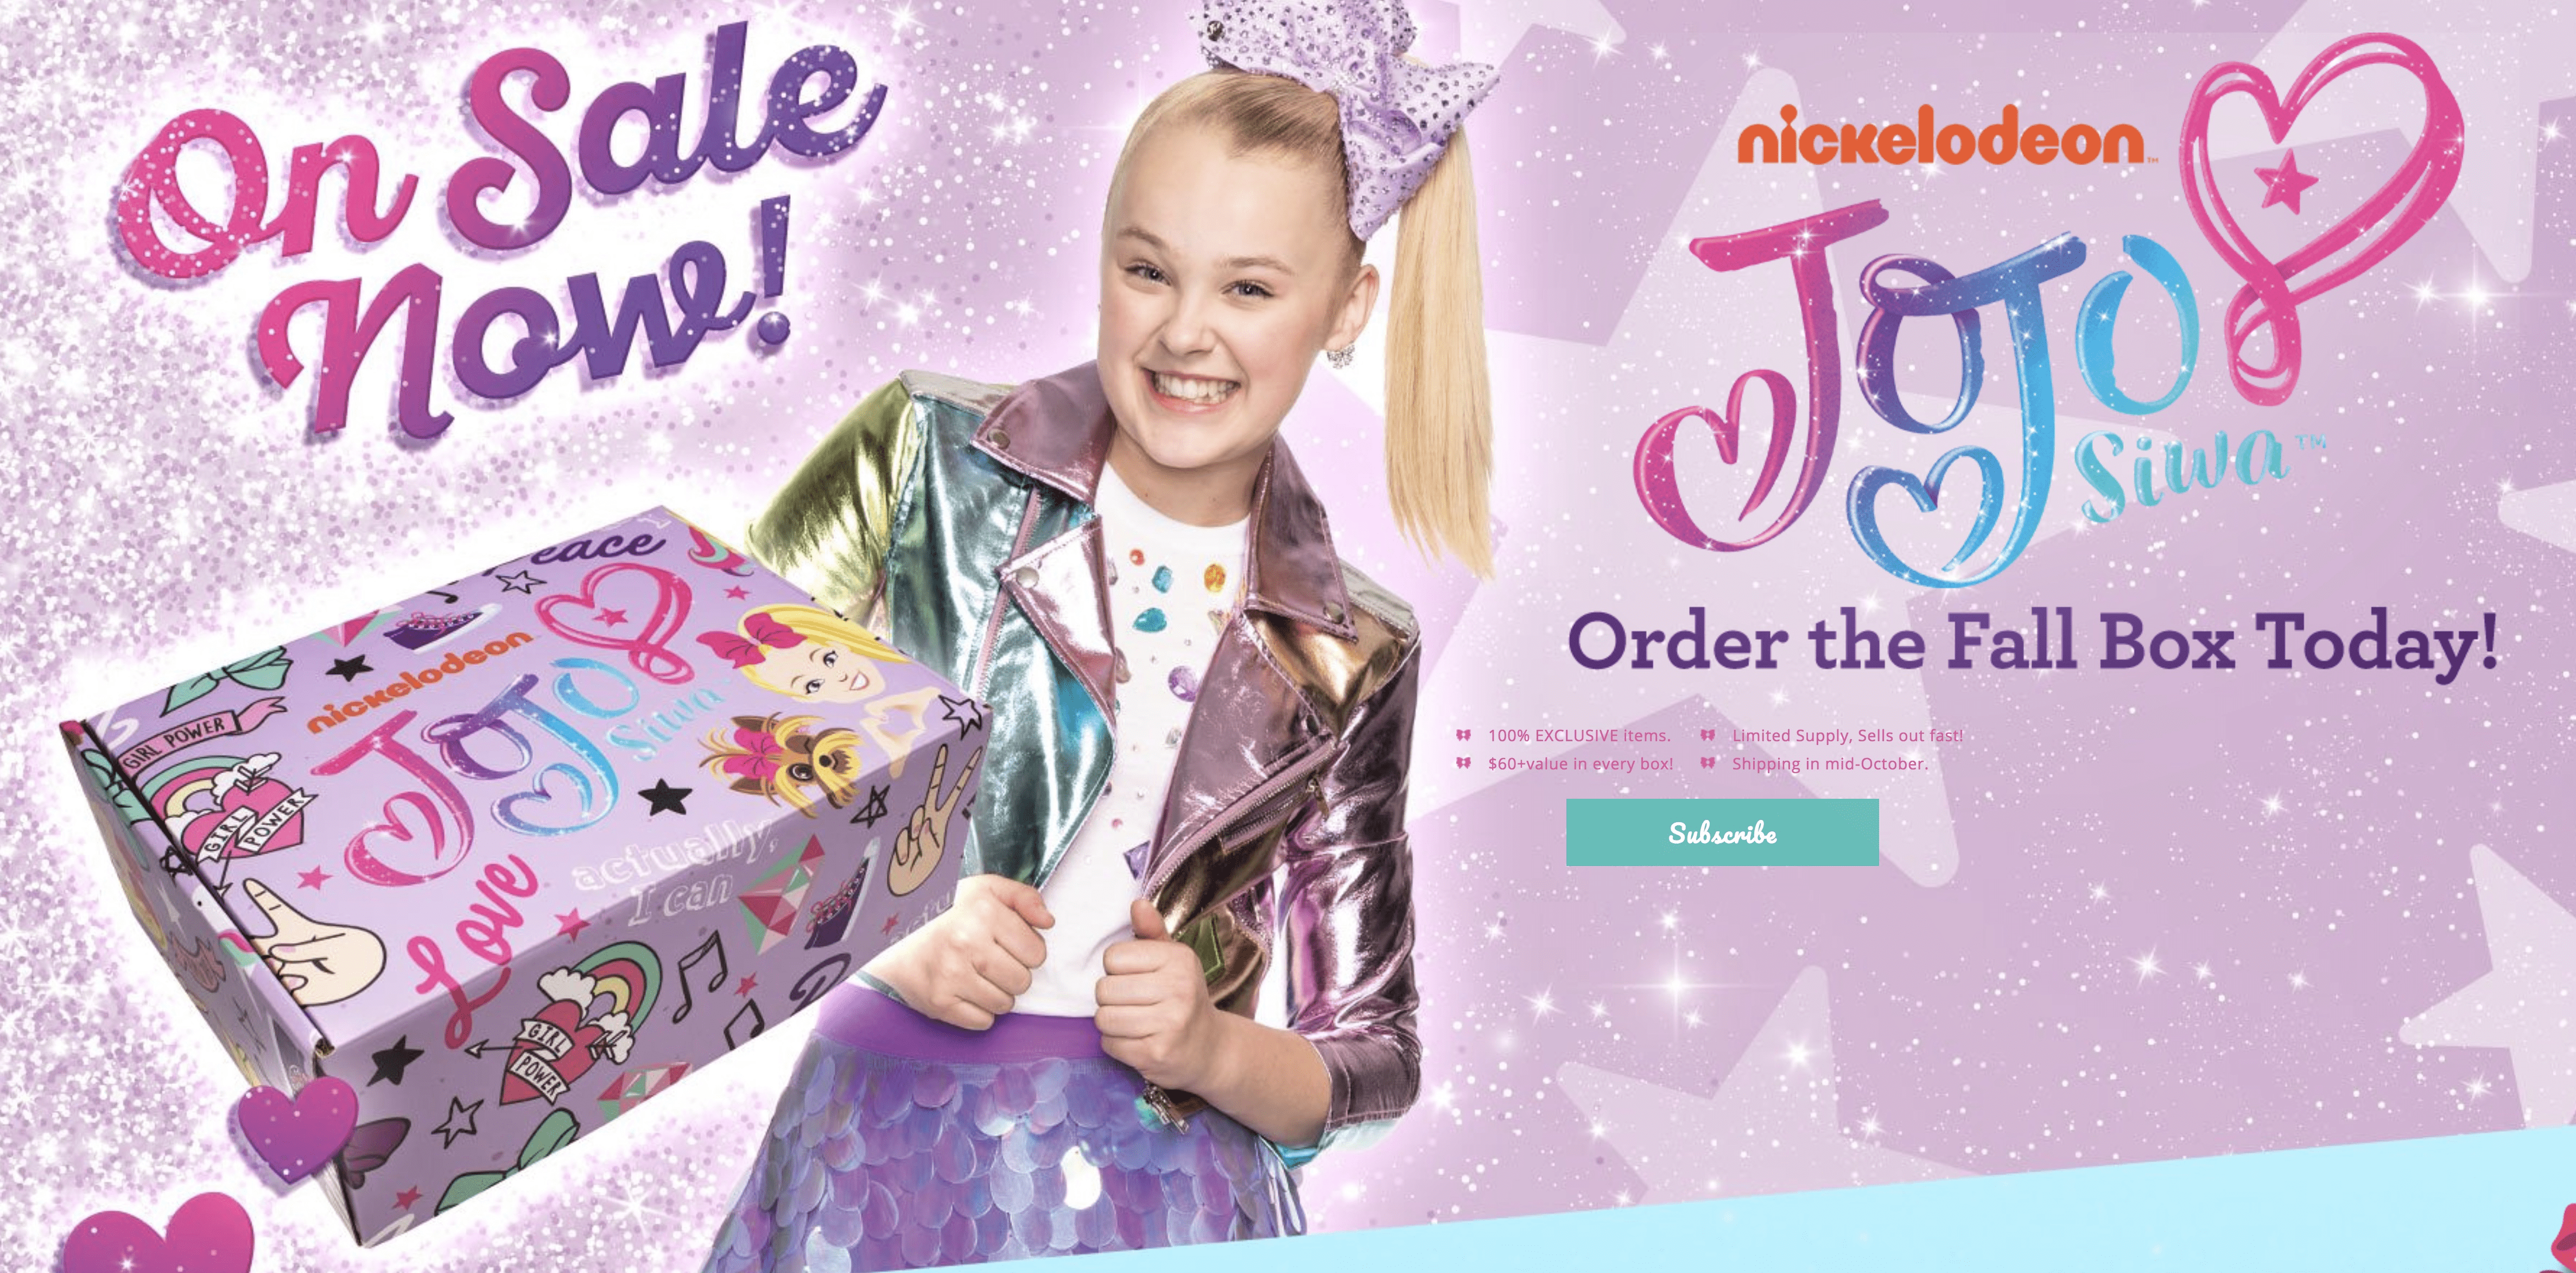 The Jojo Siwa Fall 2018 Box Pre-Orders Available Now!